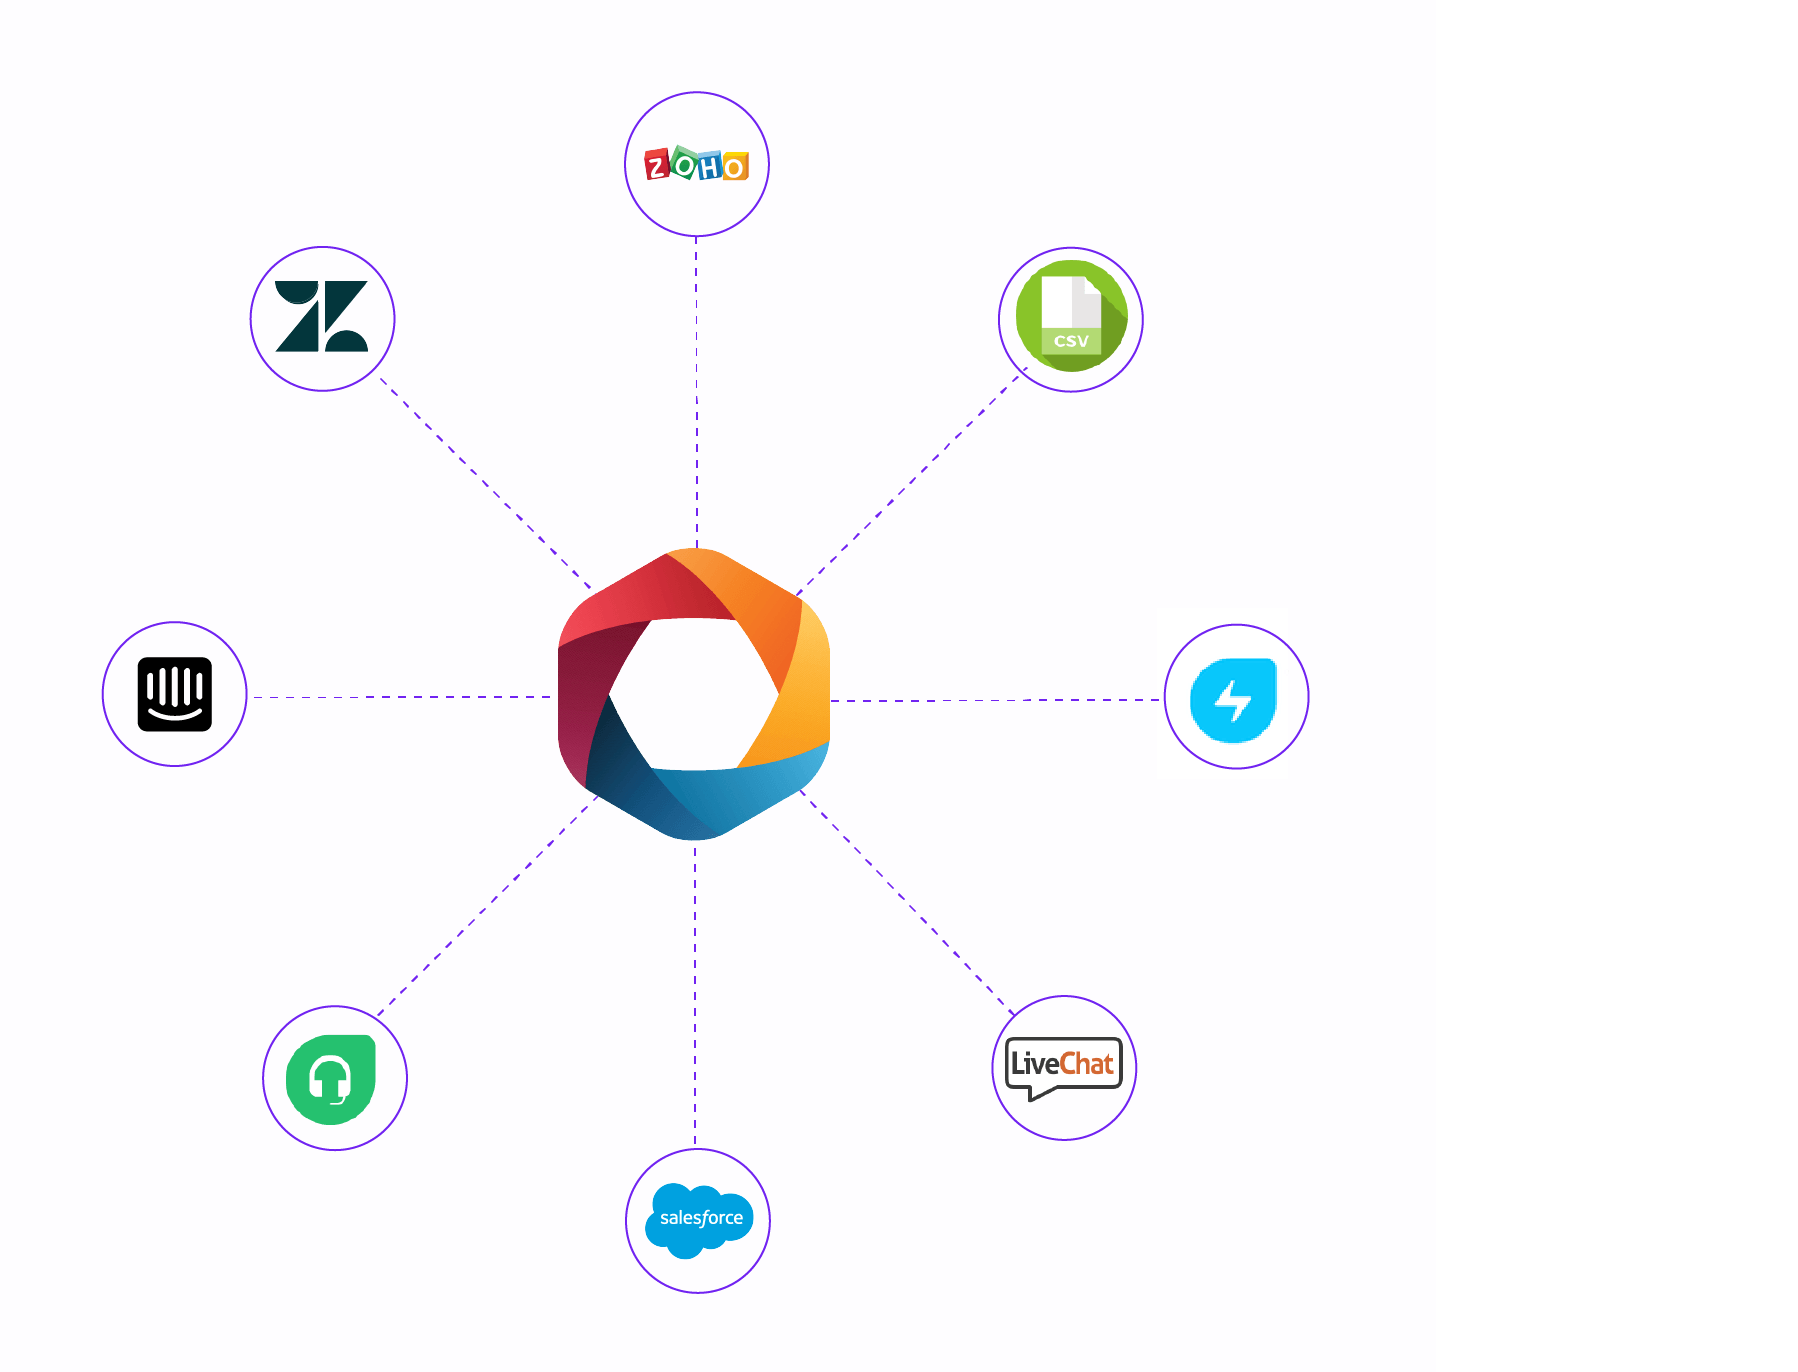 Cx Moments offers a Customer support analytics integration for Zendesk, Freshdesk, Intercom, Salesforce, Livechat and more so you can build customer centric insights